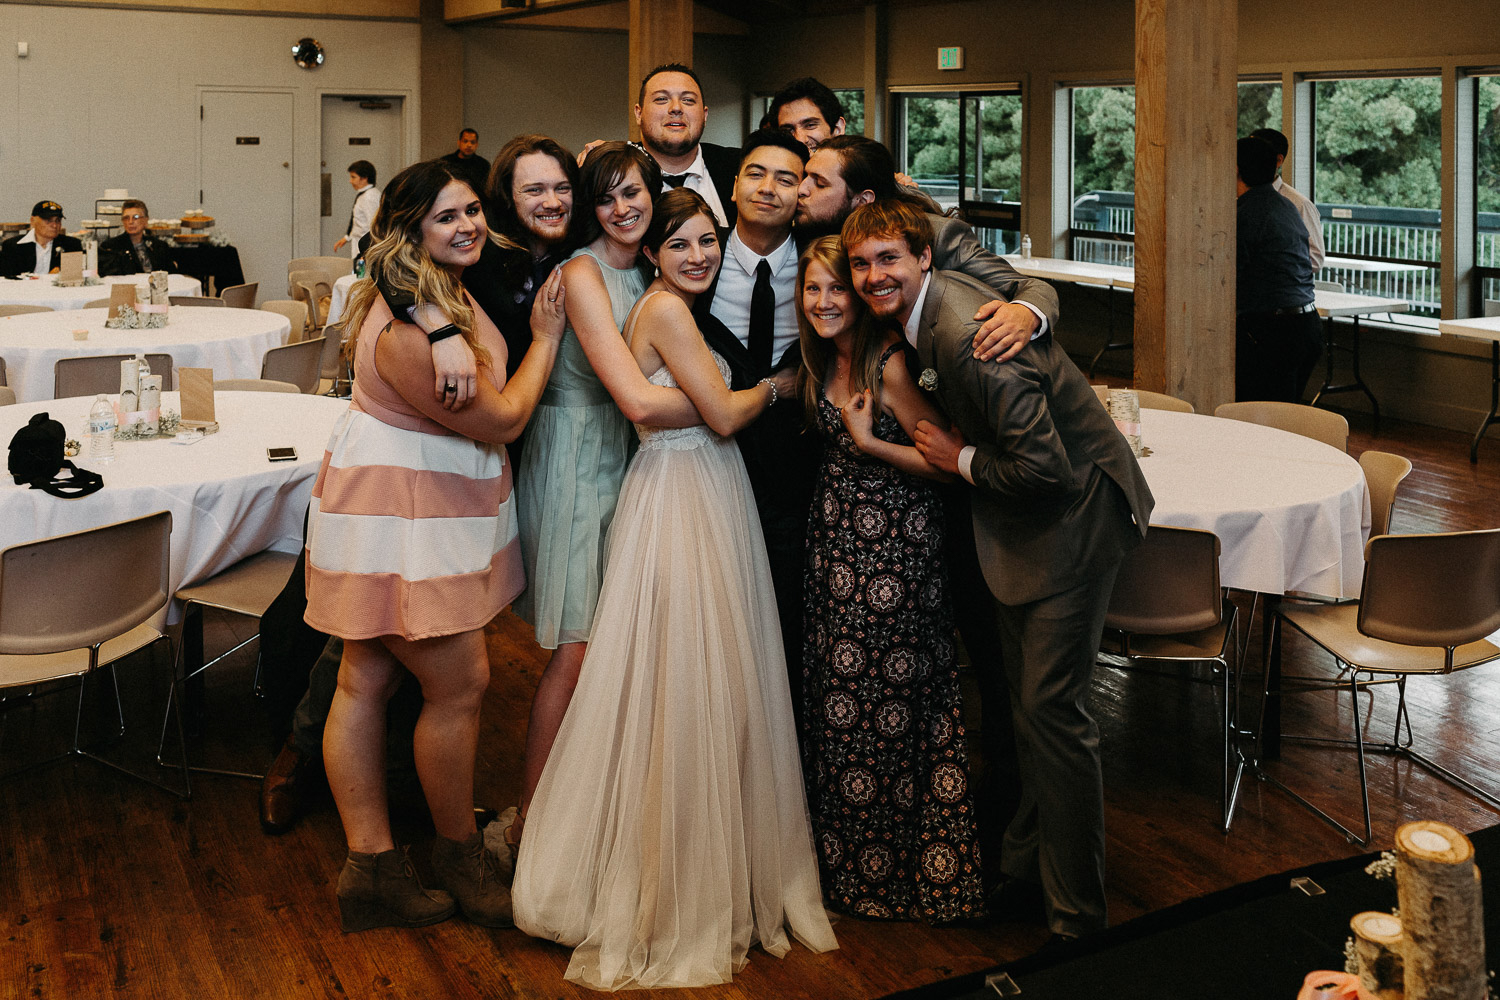 Image of wedding party at wedding reception